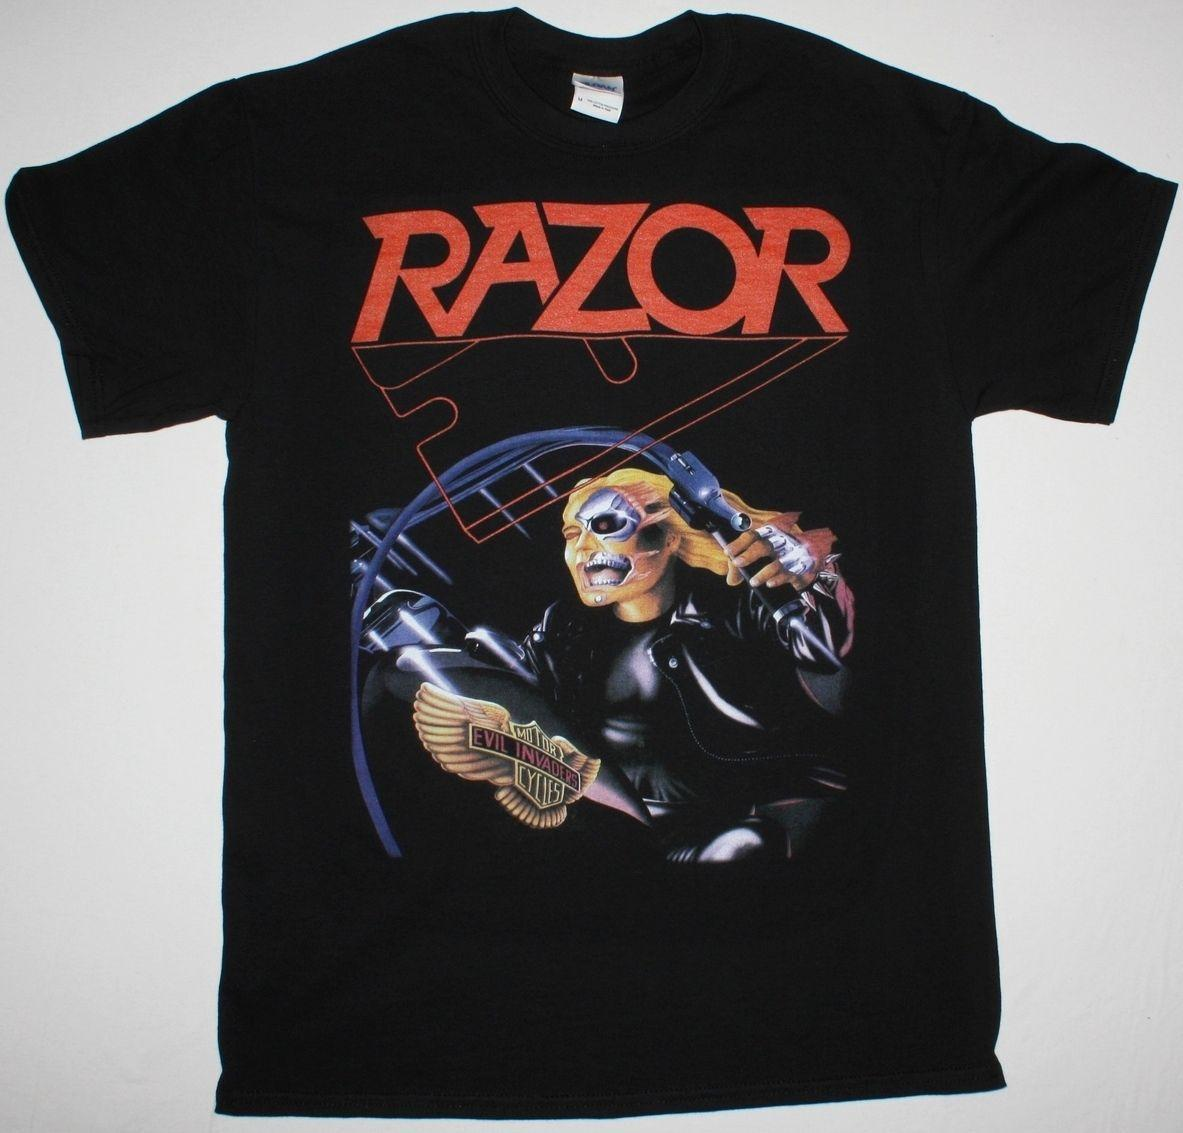 RAZOR EVIL INVADERS THRASH SPEED METAL BAND SACRIFICE S-XXL NEW BLACK T-SHIRT